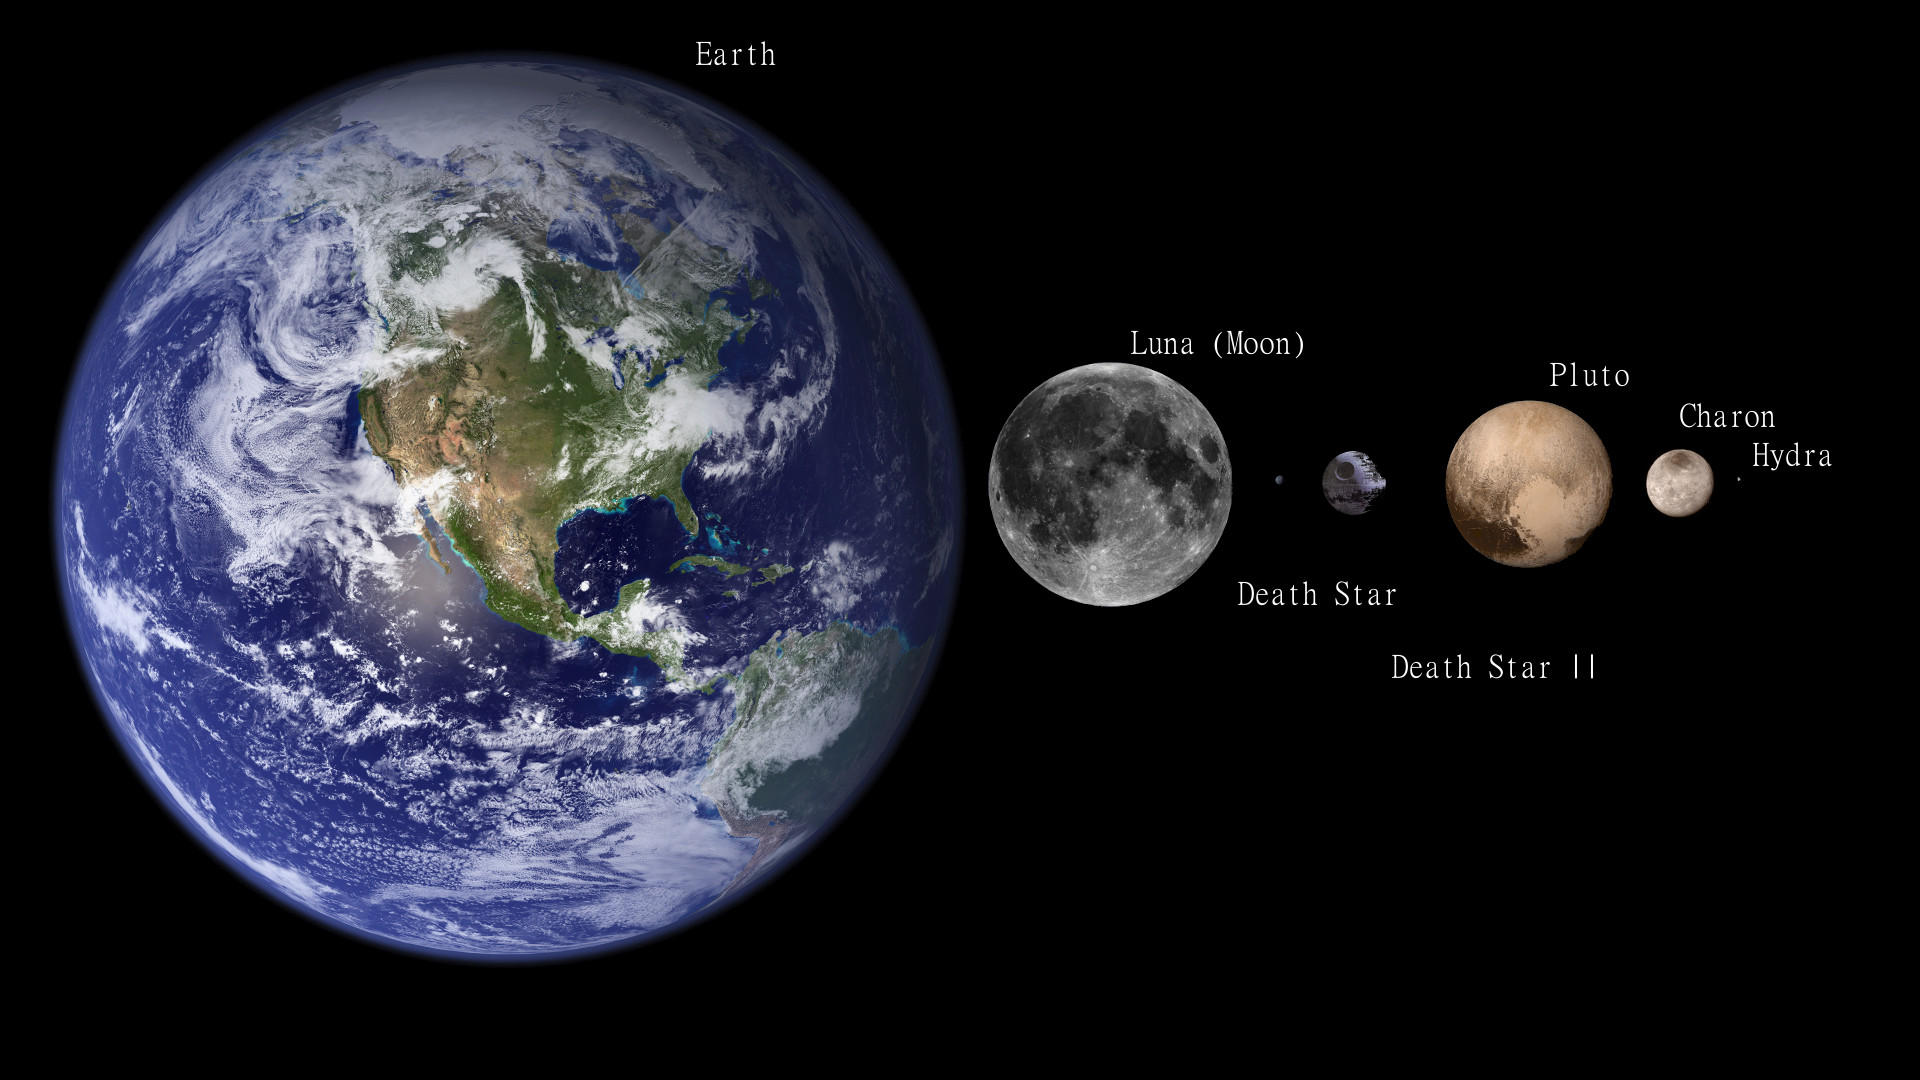 I had a little insomnia tonight, so I tossed together this comparison of  the size of the two Death Stars as compared to The Earth, The Moon, Pluto,  …